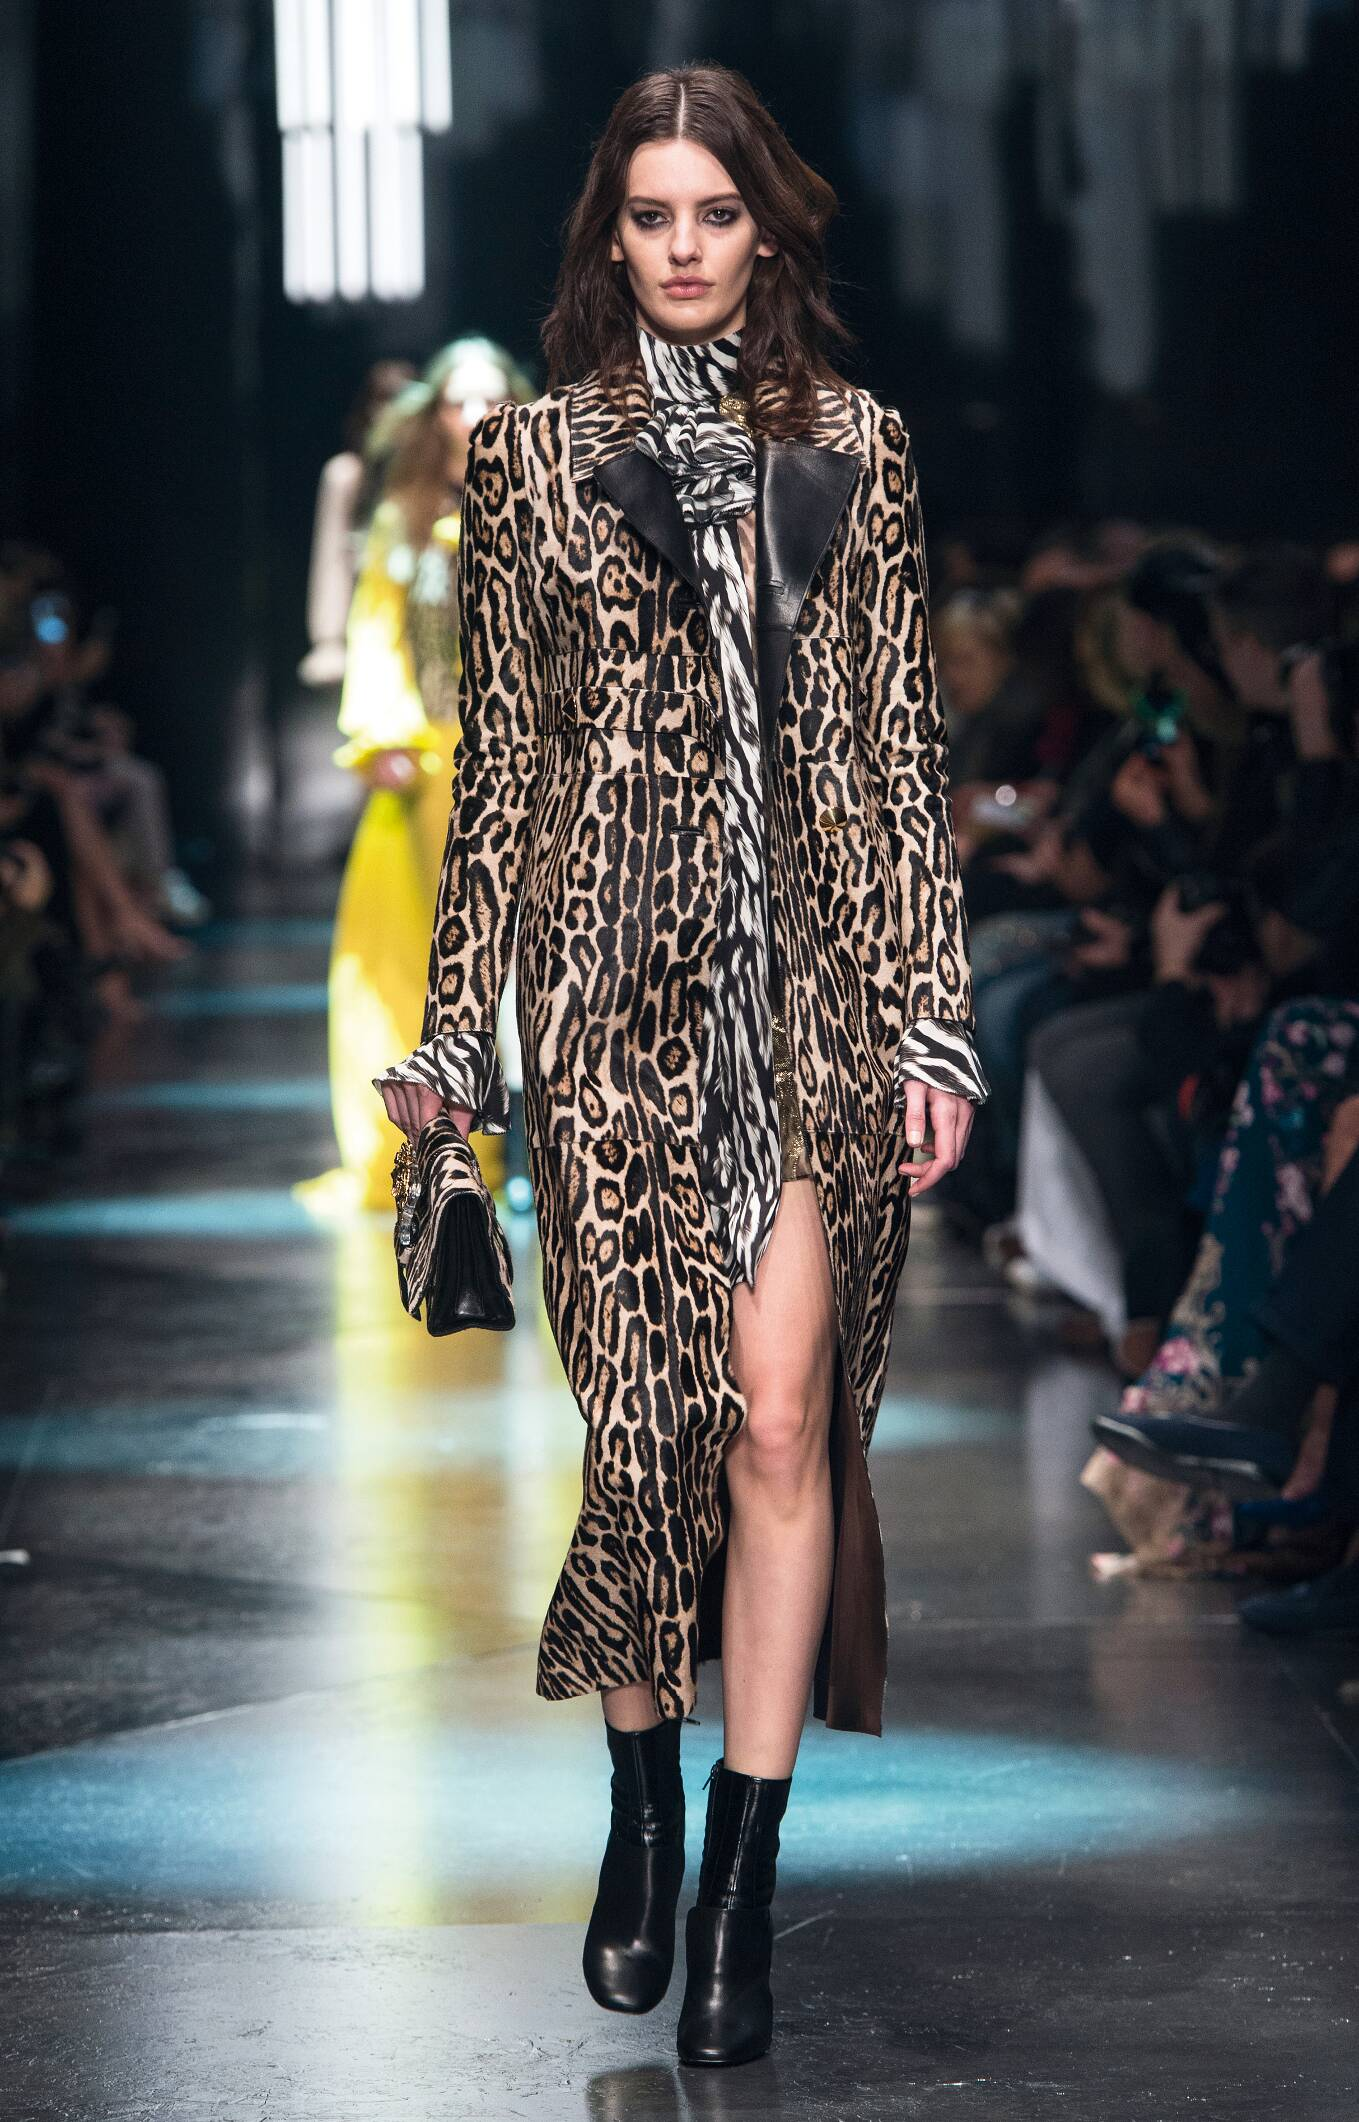 ROBERTO CAVALLI FALL WINTER 2015-16 WOMEN'S COLLECTION